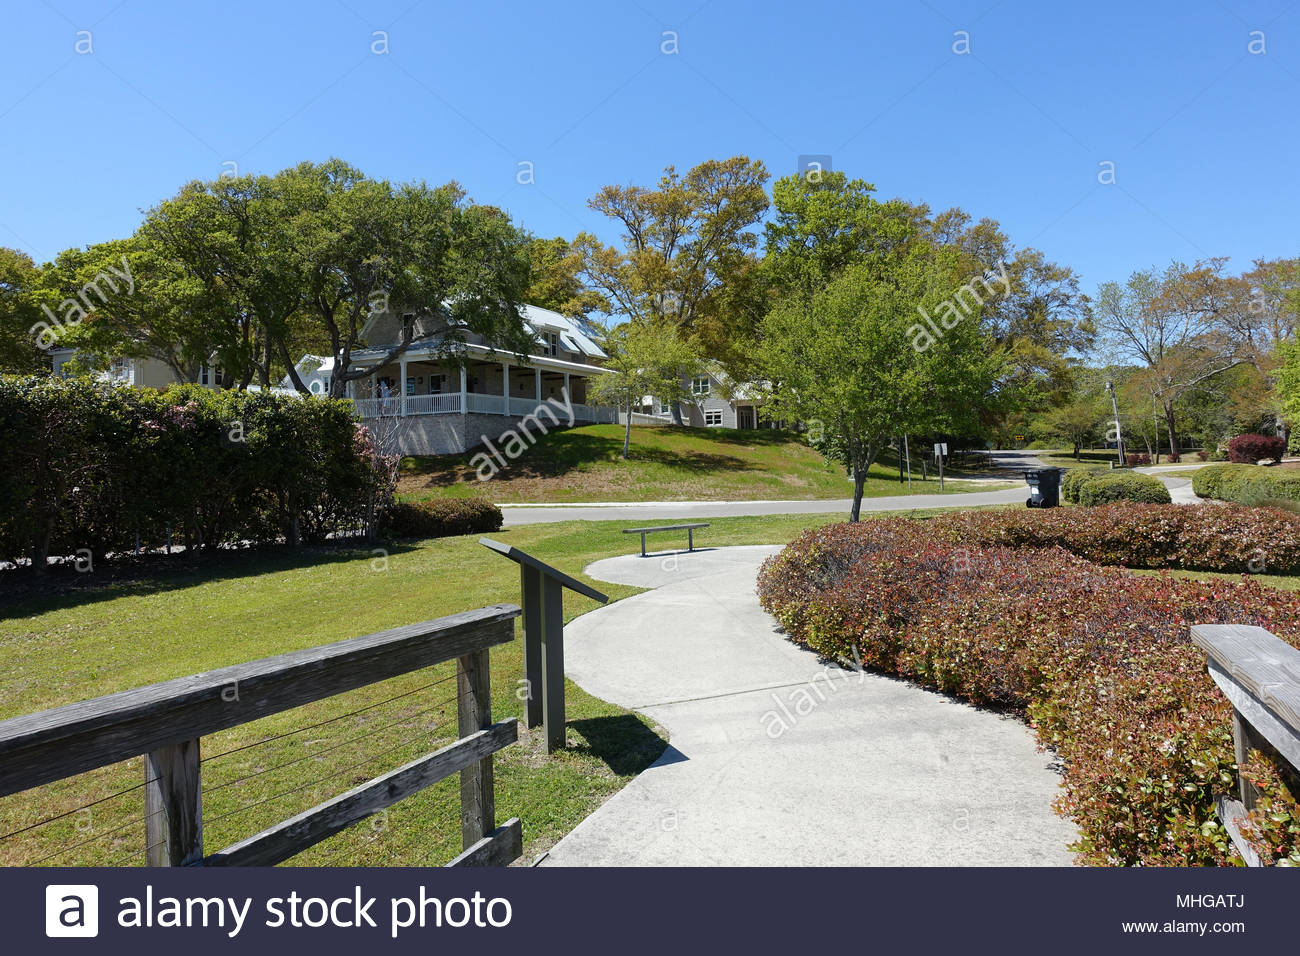 View of a Southport, North Carolina Neighborhood from Kingsley Park Stock Photo